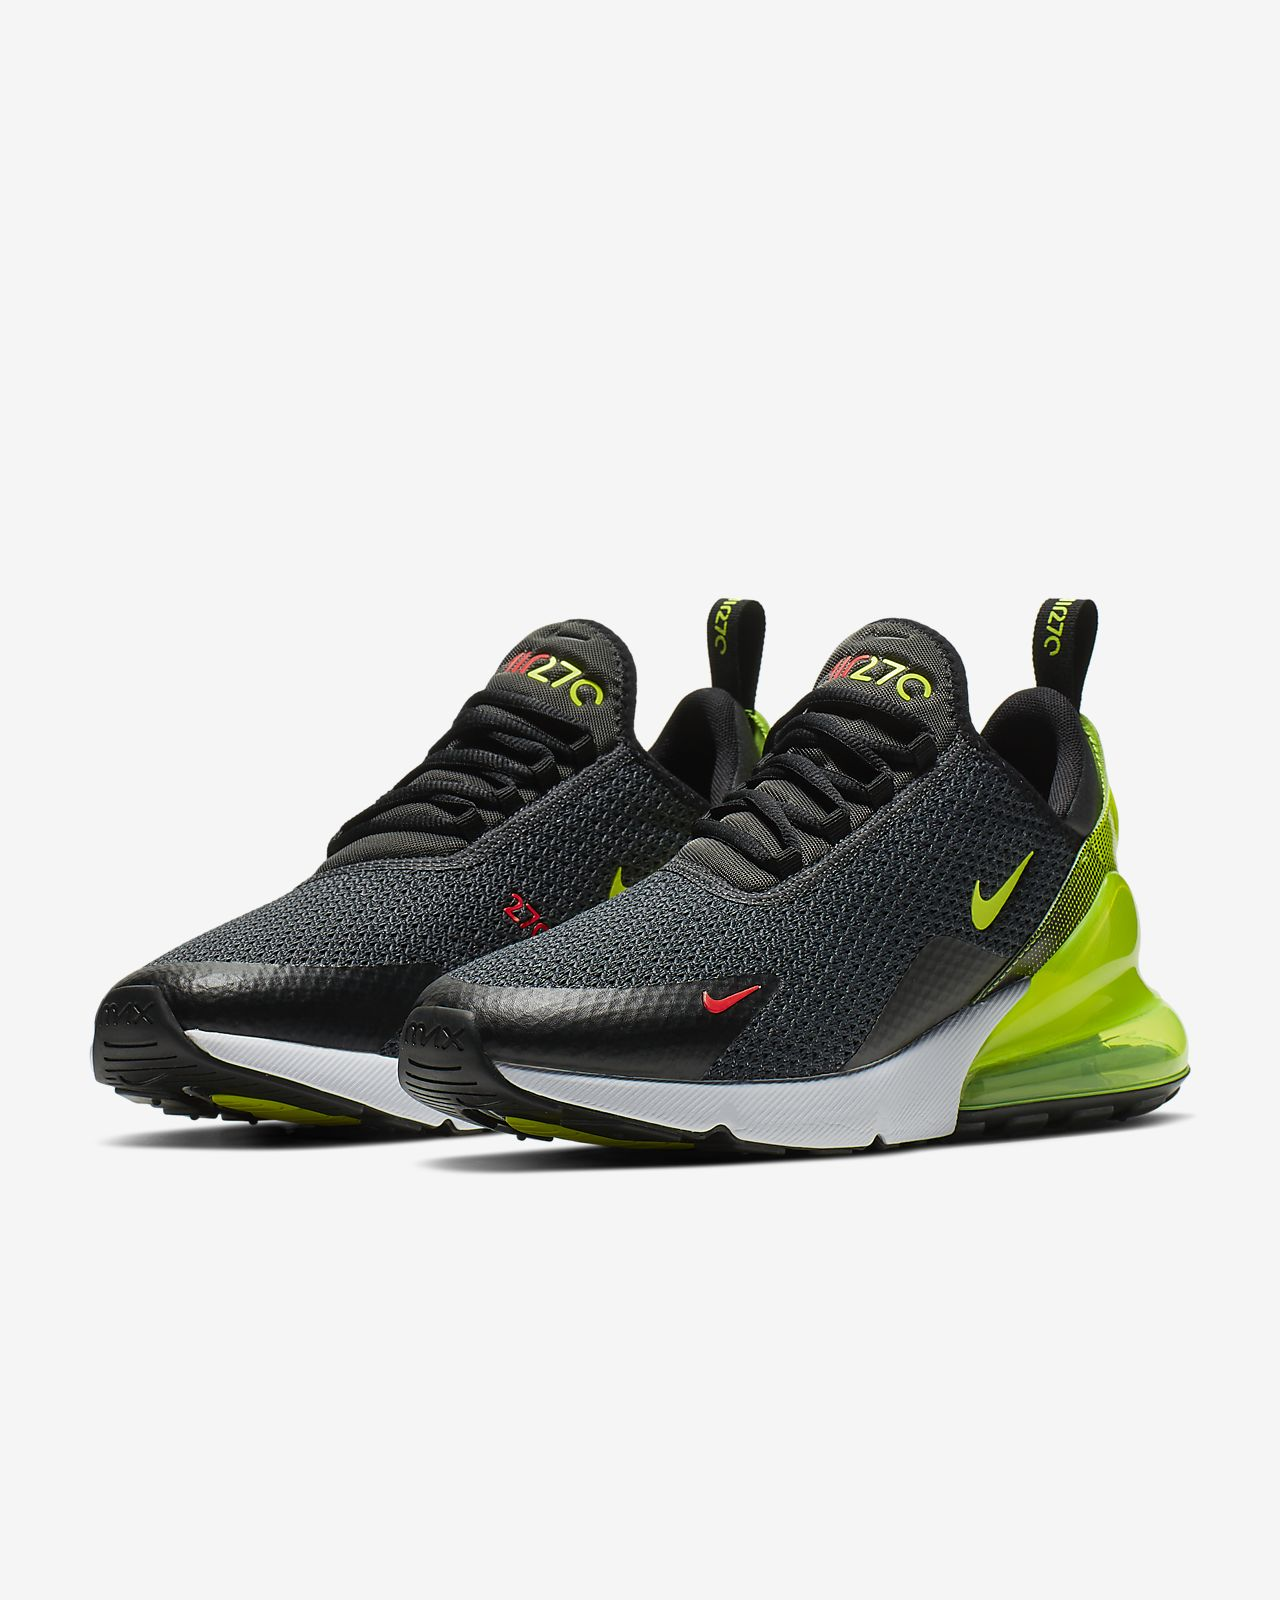 detailed look 6f325 41d18 Nike Air Max 270 SE Men's Shoe